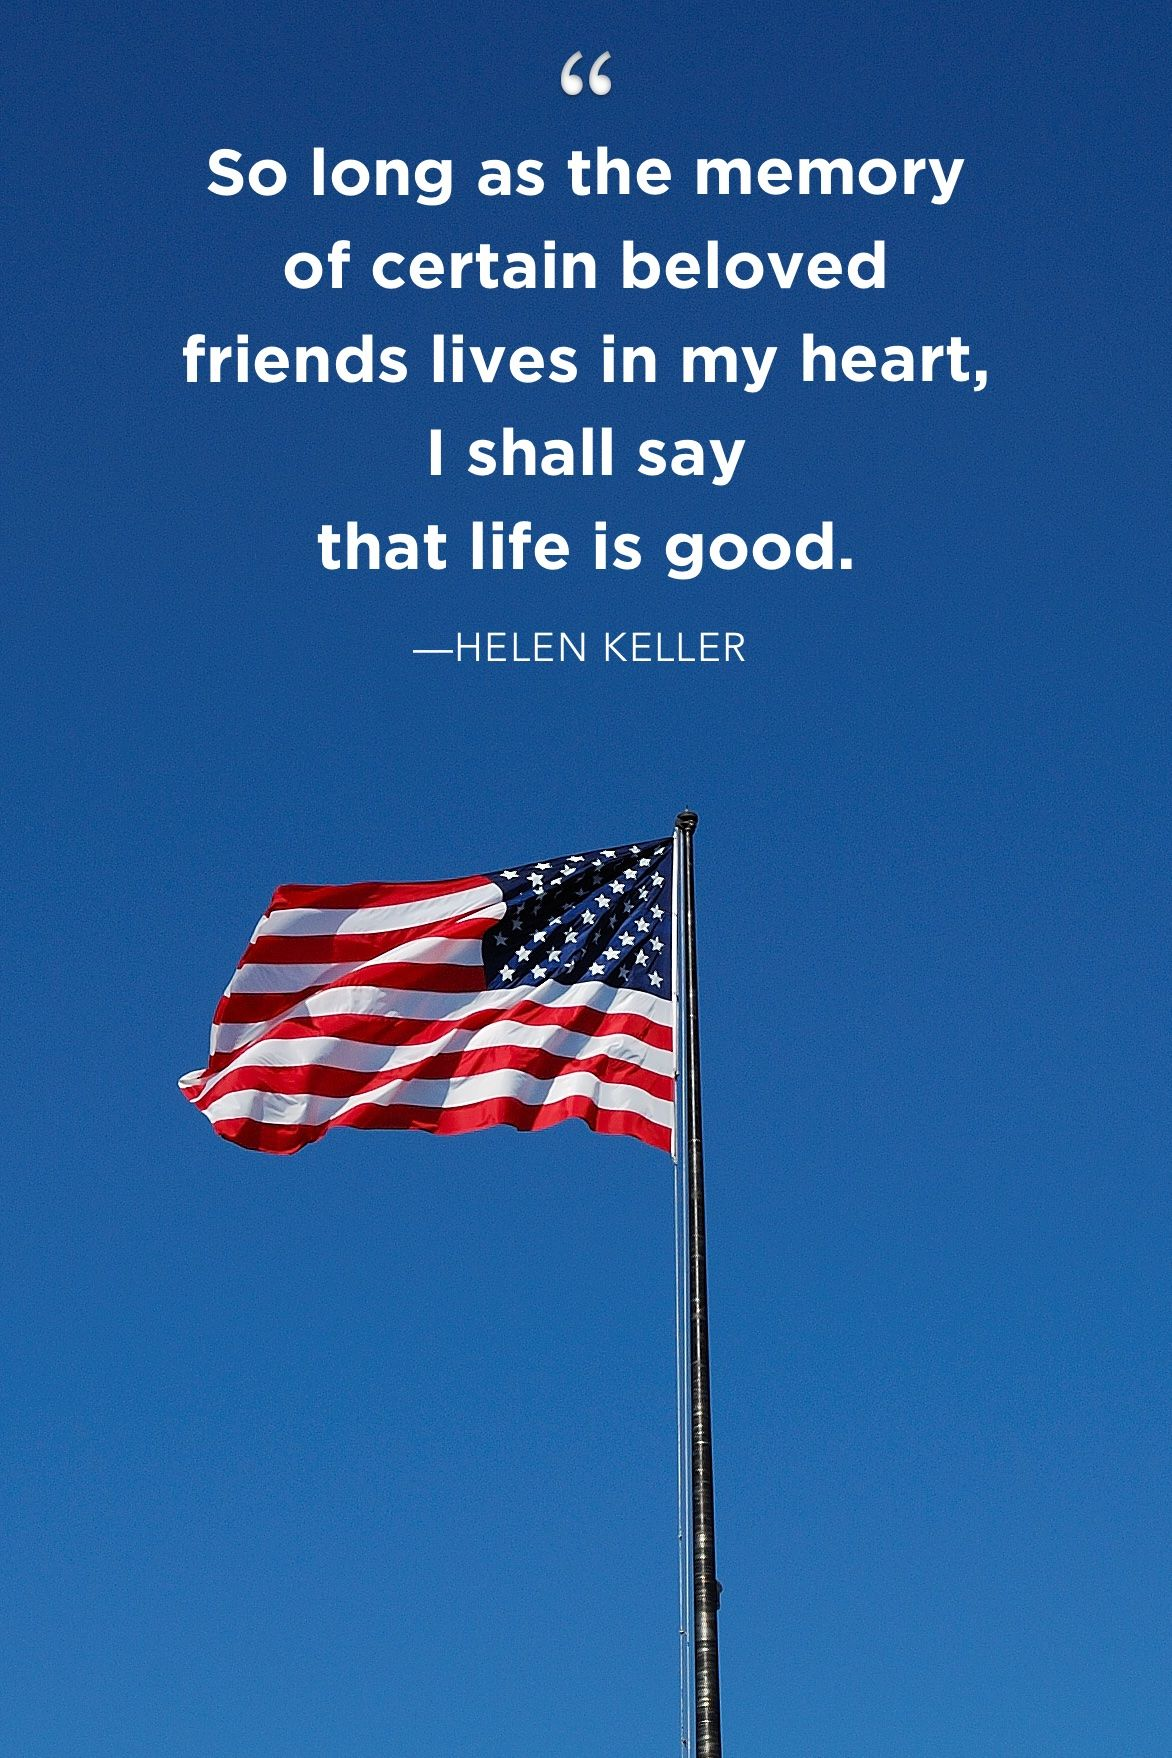 famous memorial day quotes that honor america s fallen heroes